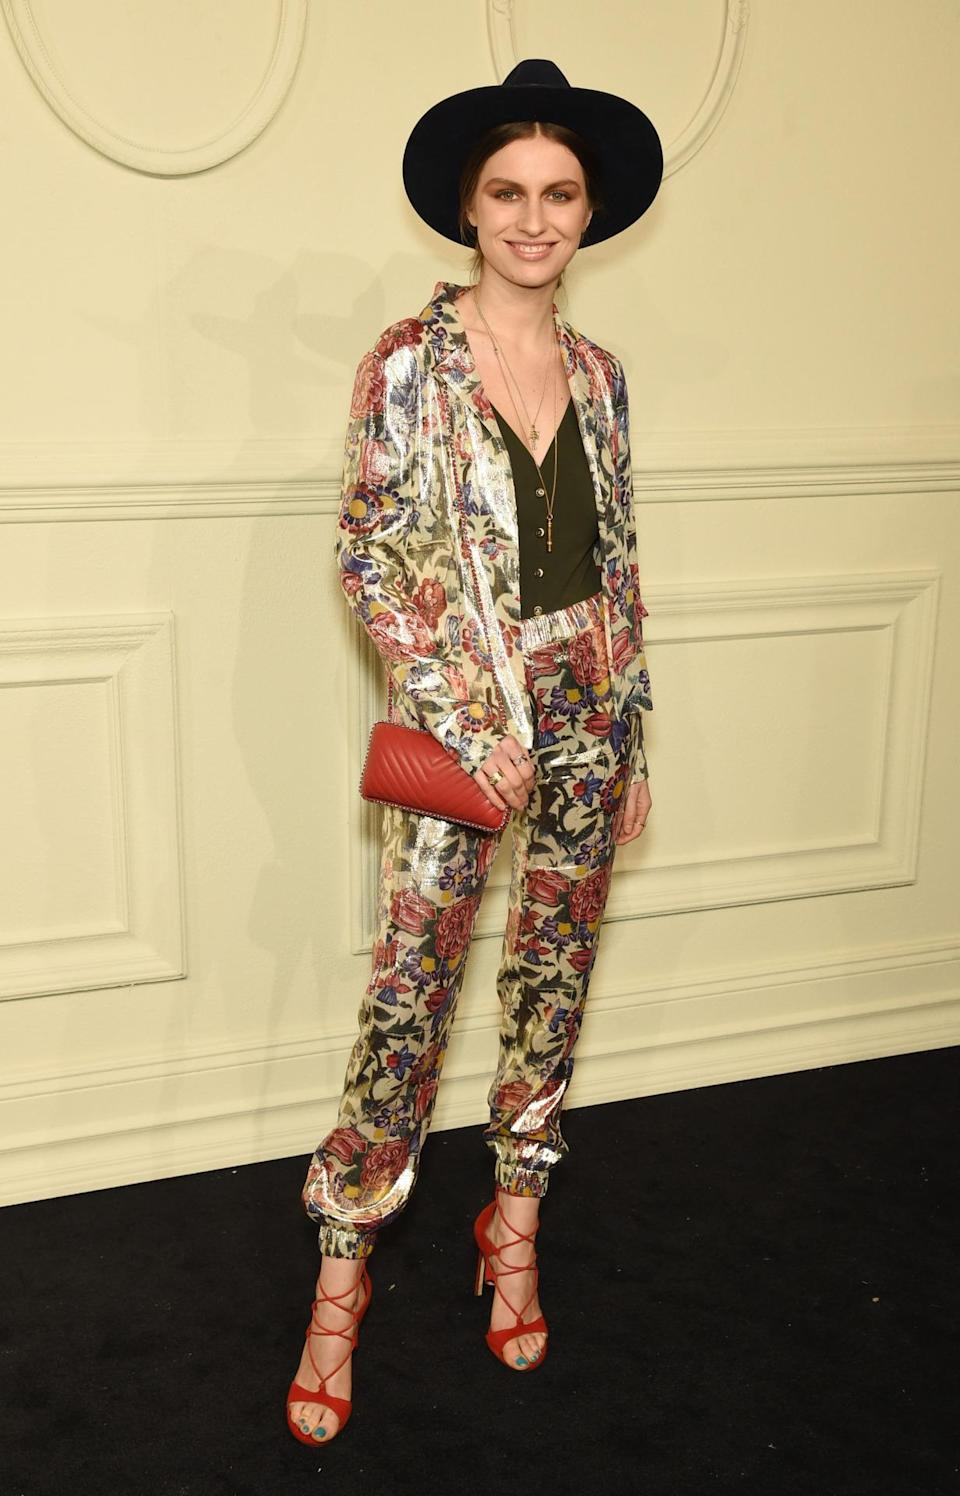 <p>Artist and model Tali Lennox poses in a printed suit with black tank and hat.</p>